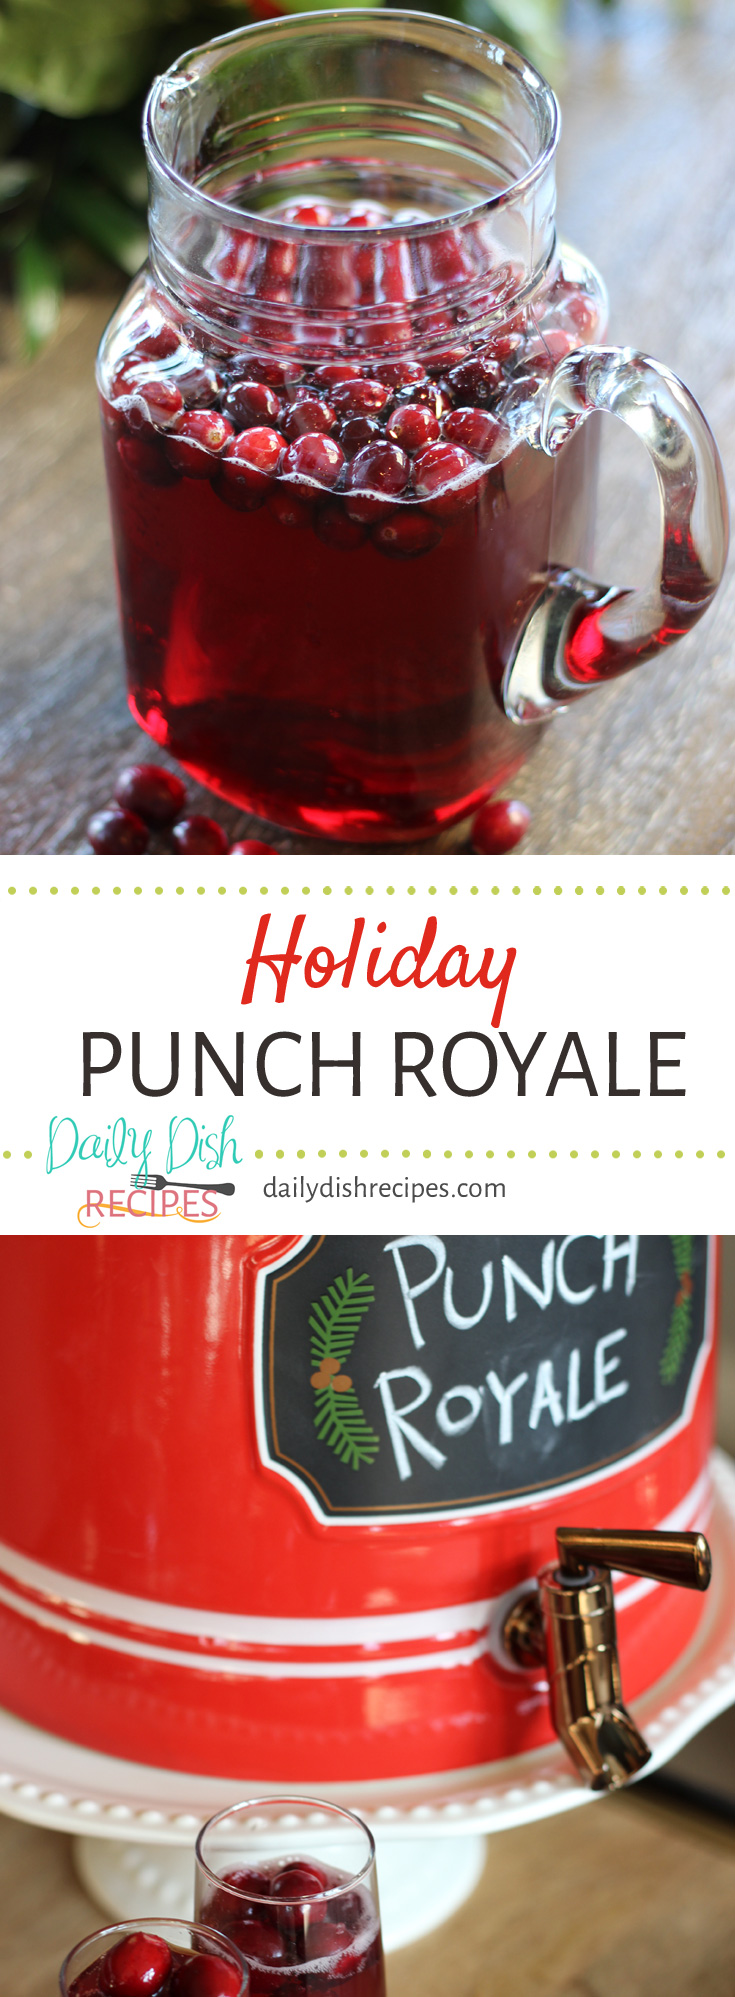 Holiday Punch Royale